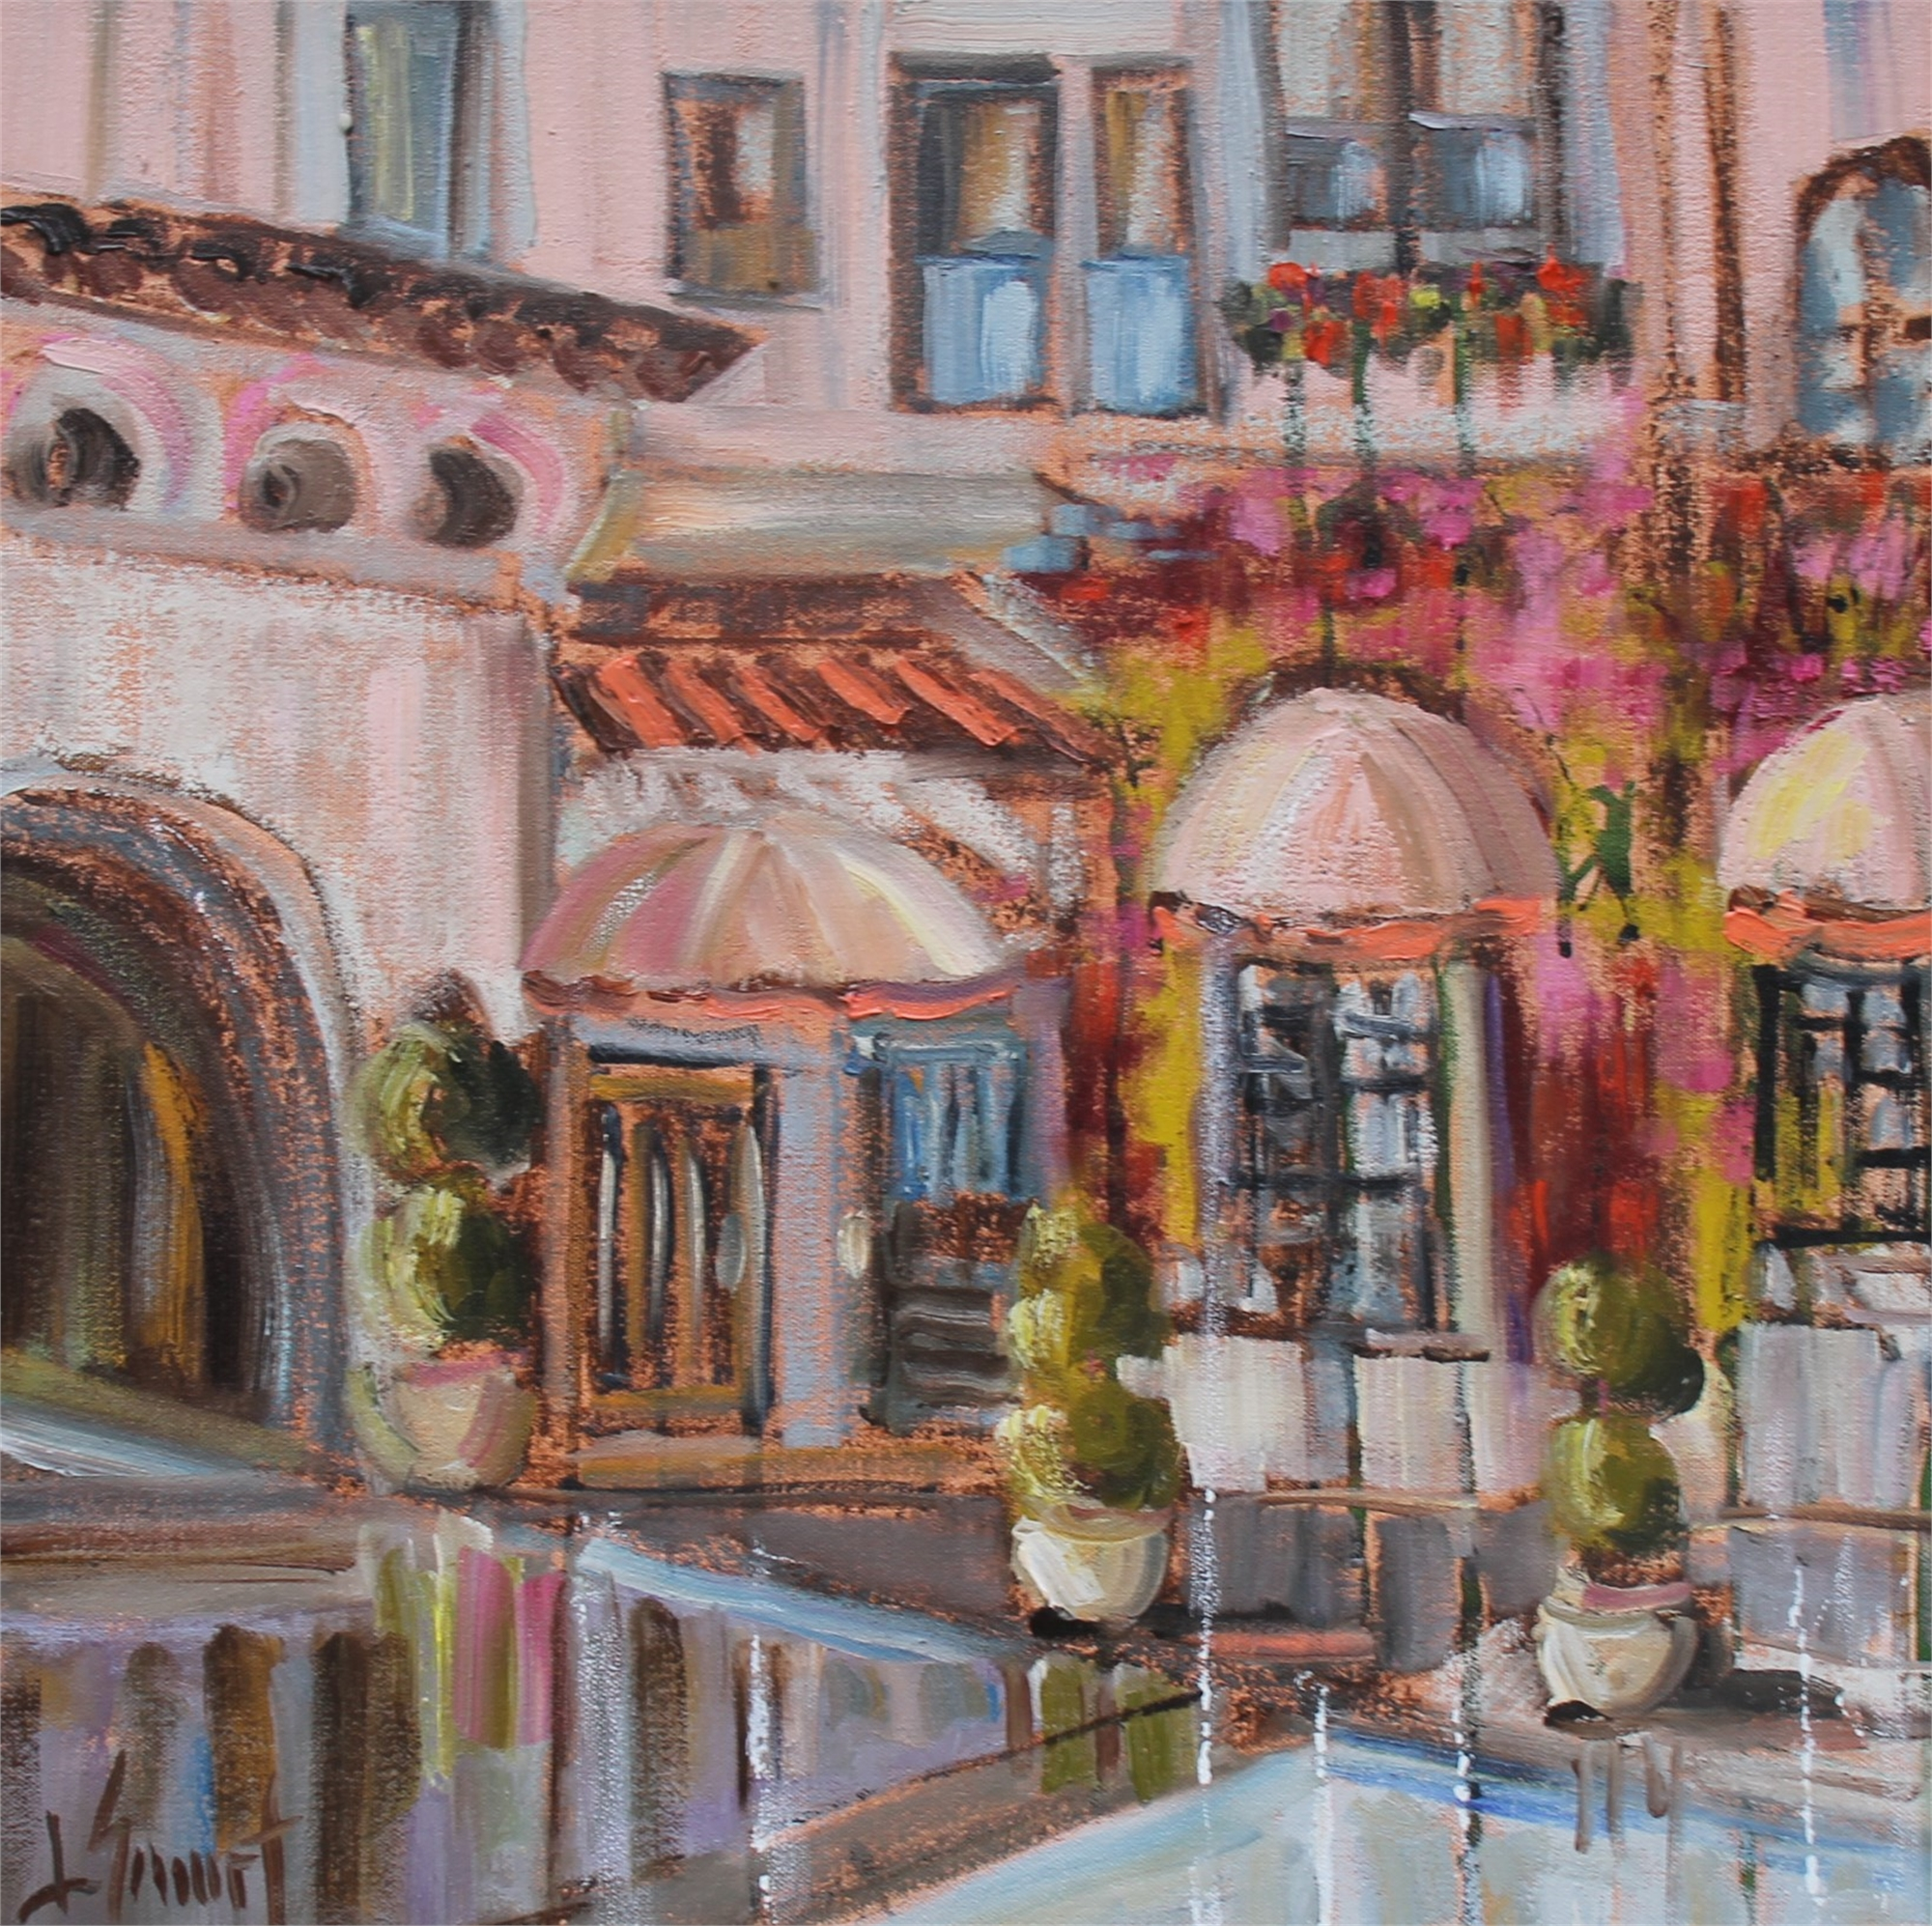 Pink Awnings by Libby Smart